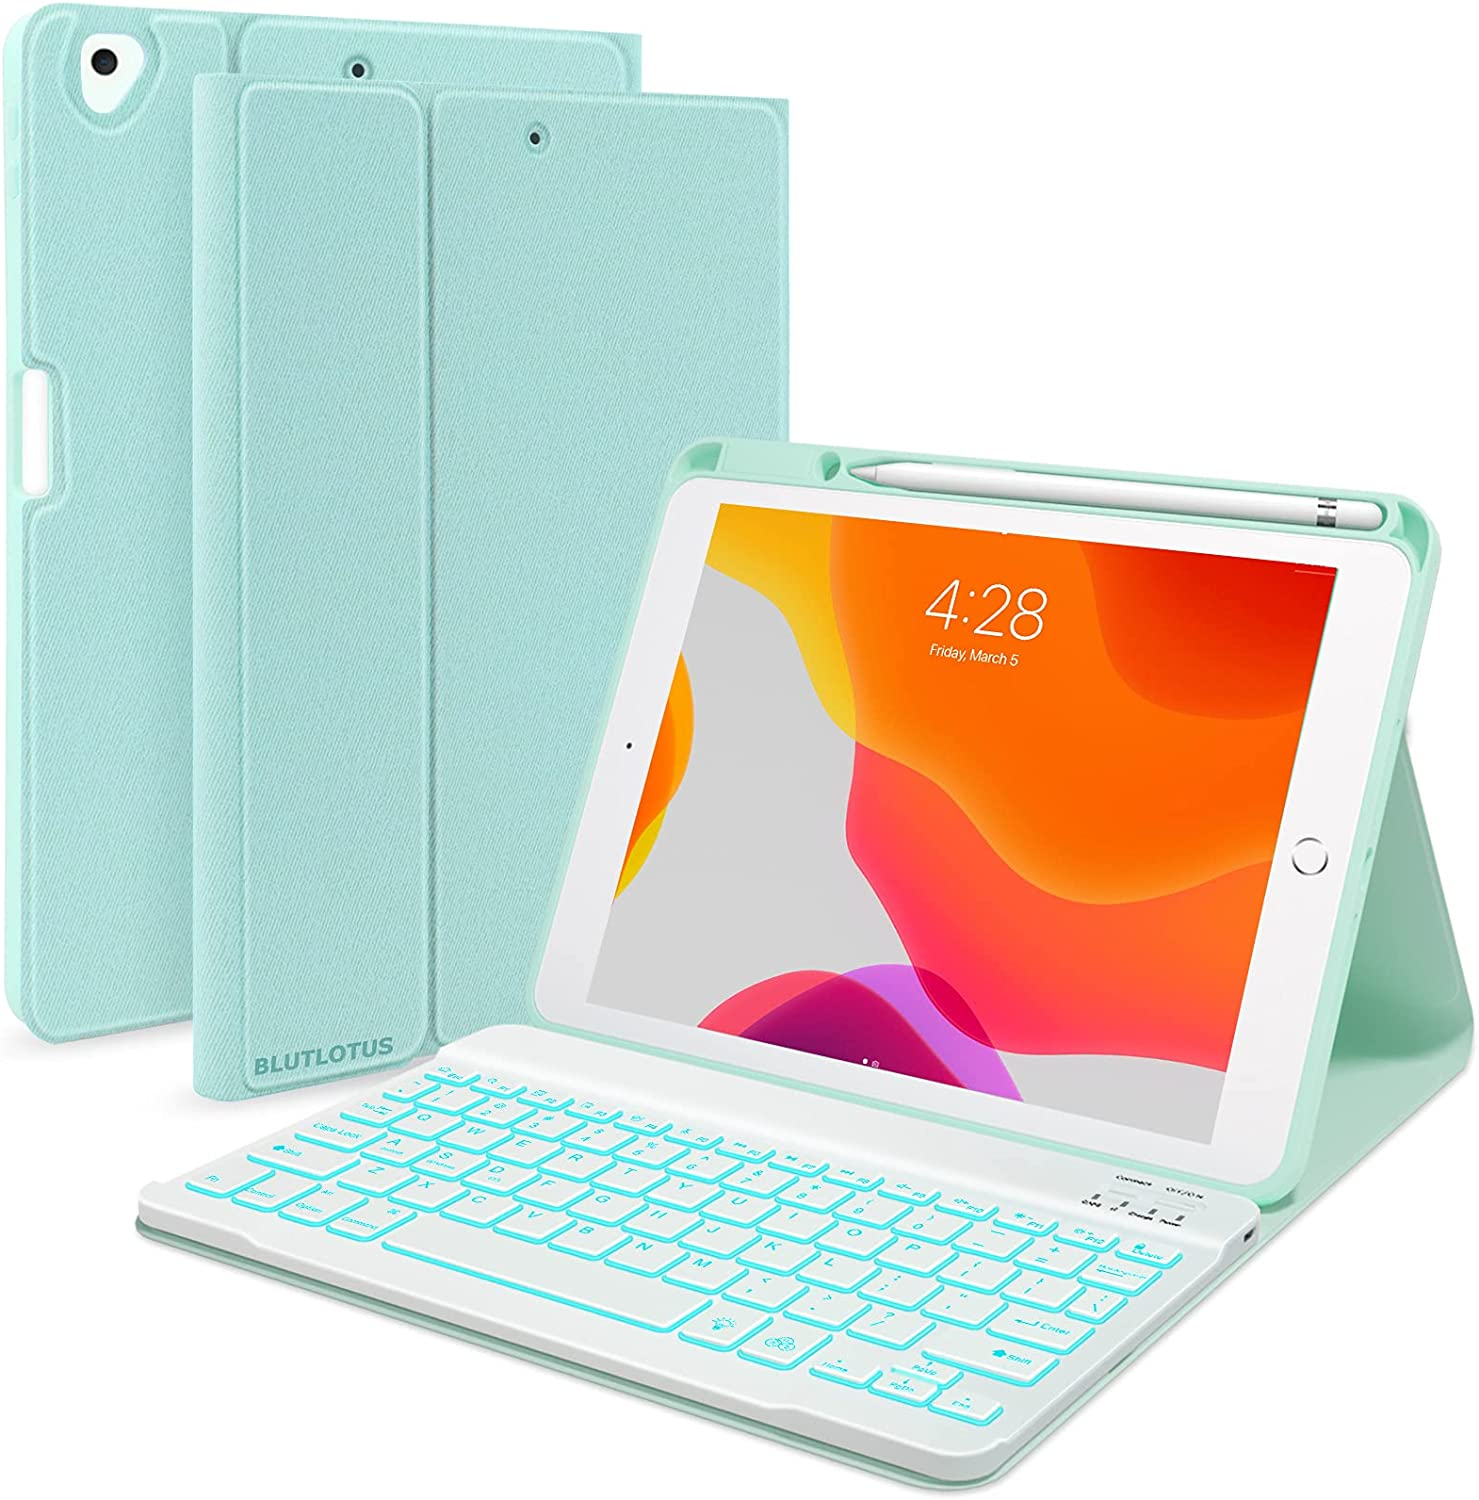 iPad 7th/8th/9th Generation Case with Keyboard 10.2-inch 2019/2020/2021, iPad Air 3rd/Pro 10.5-inch 2017 Compatible, 7 Color Backlit Keyboard BT/Wireless/Detachable with Pencil Holder (Mint Green)